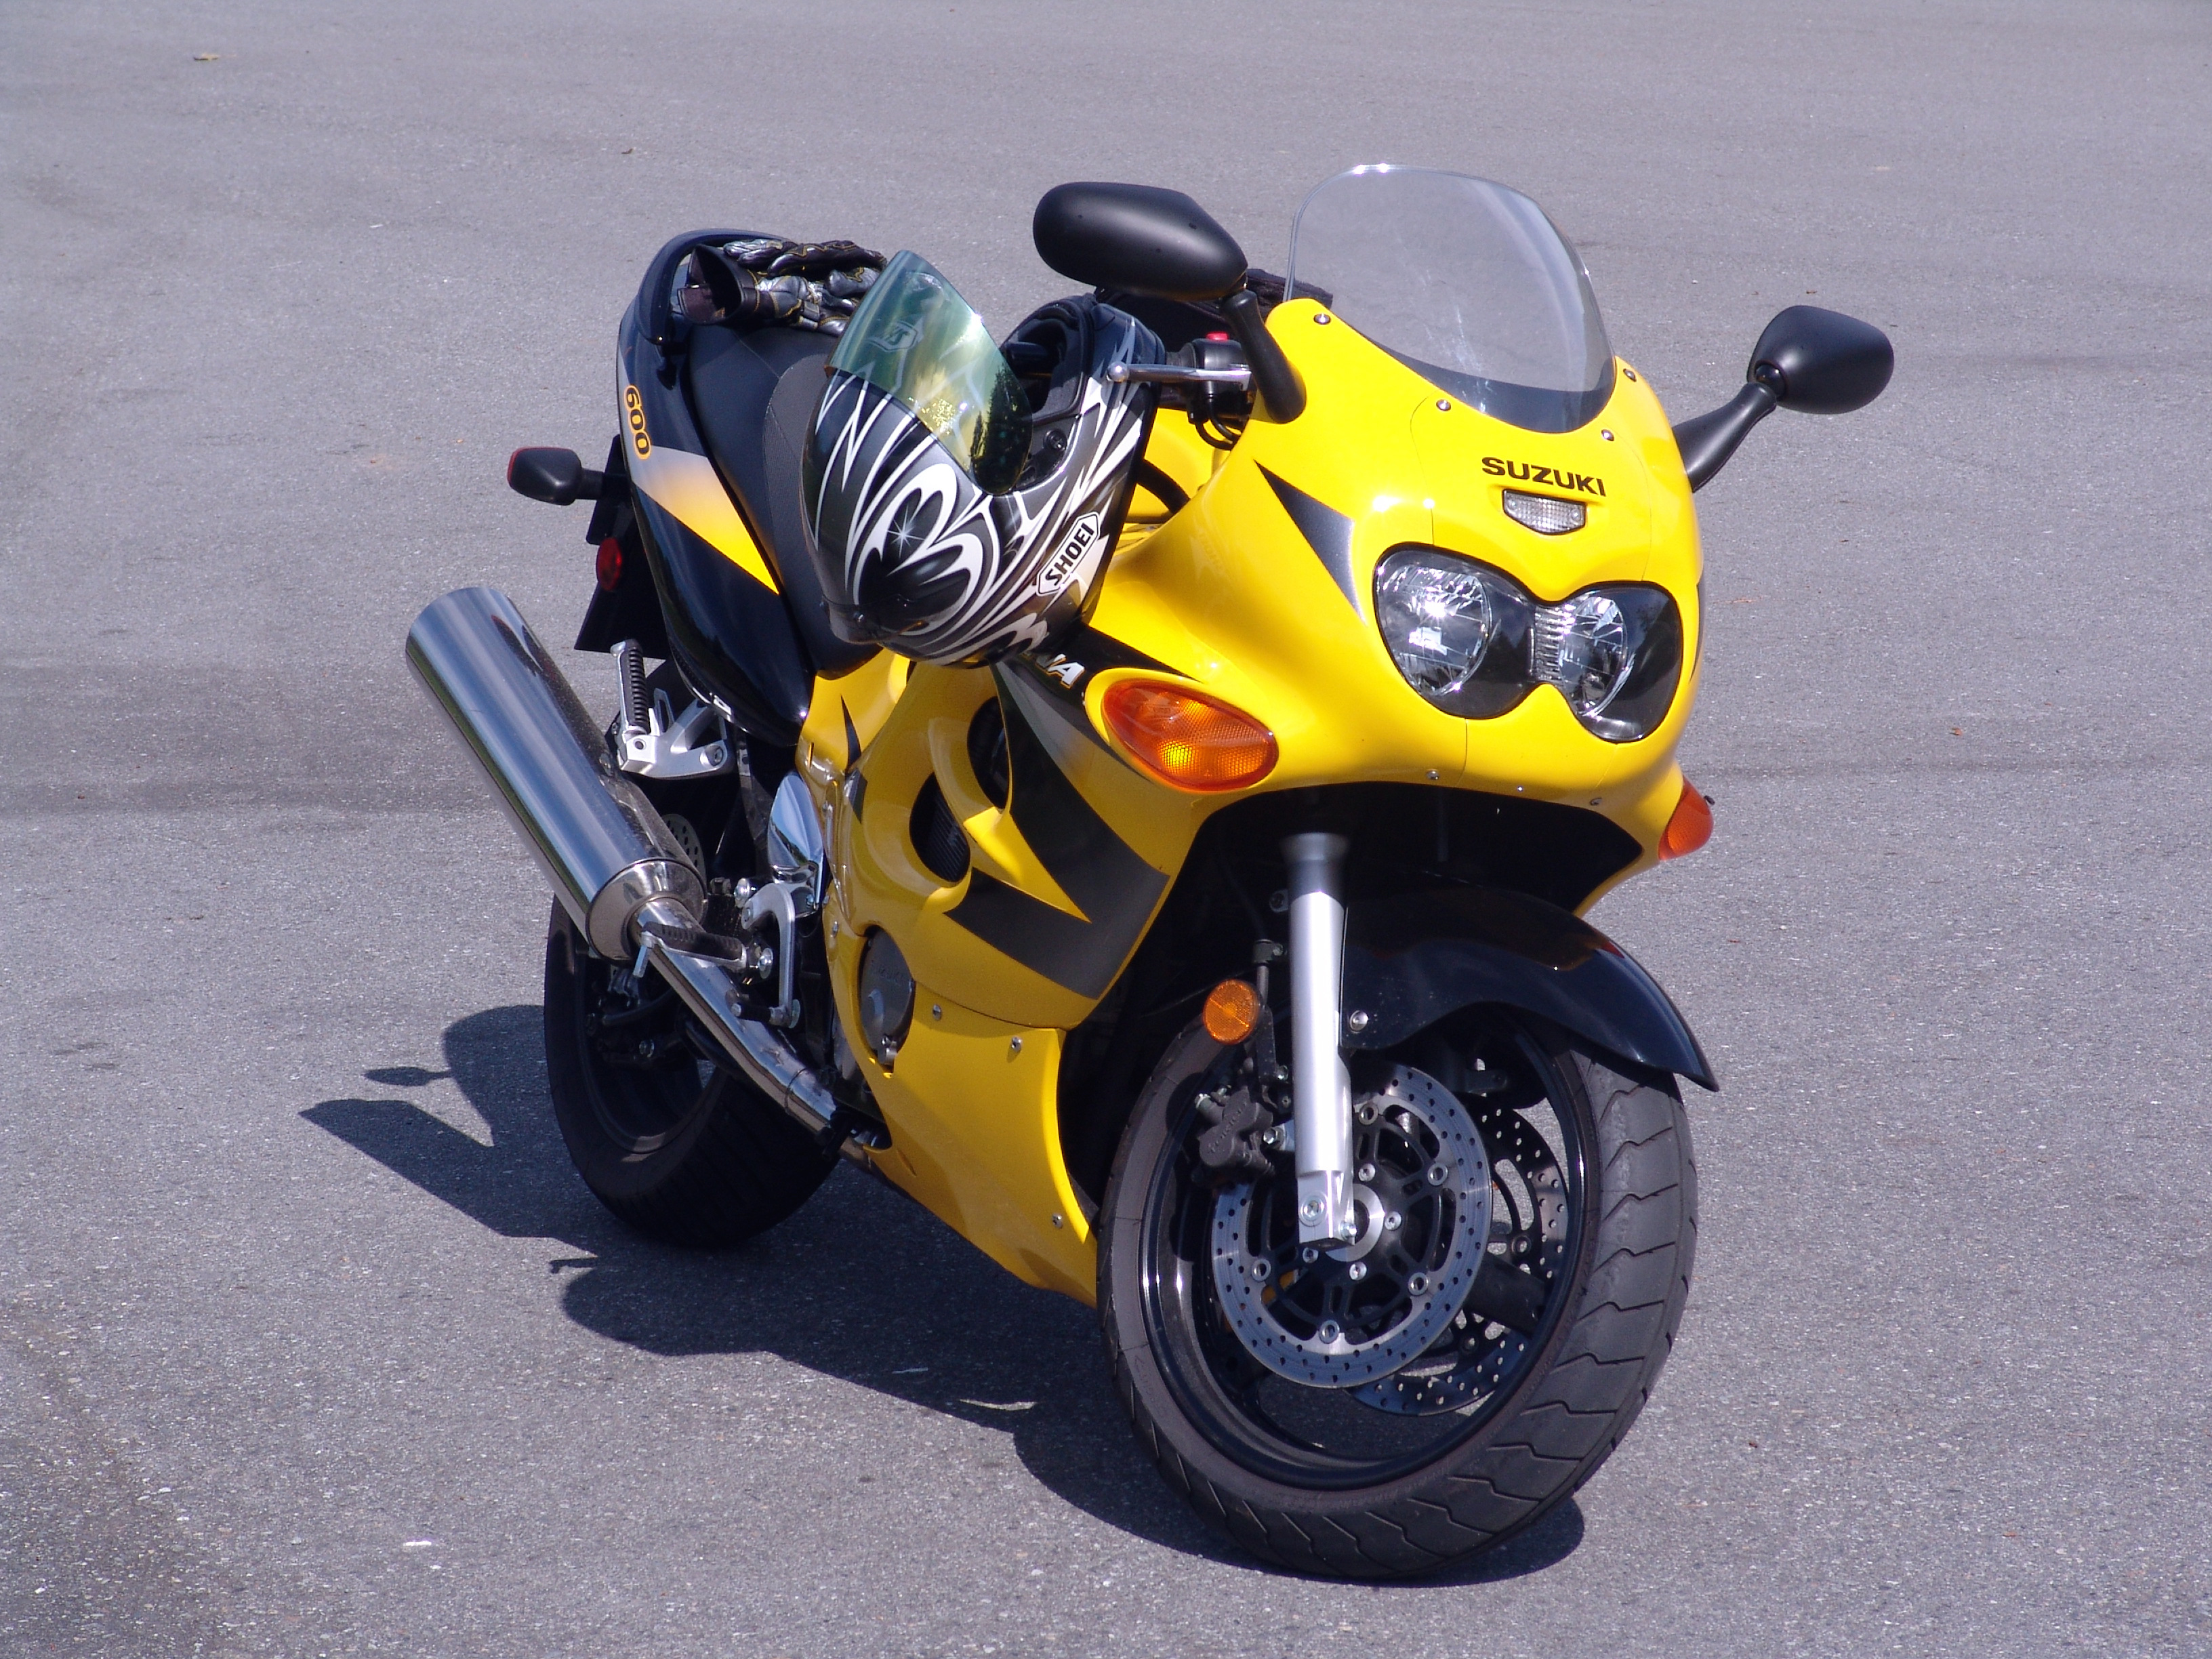 2005 suzuki gsx 600 f pics specs and information. Black Bedroom Furniture Sets. Home Design Ideas